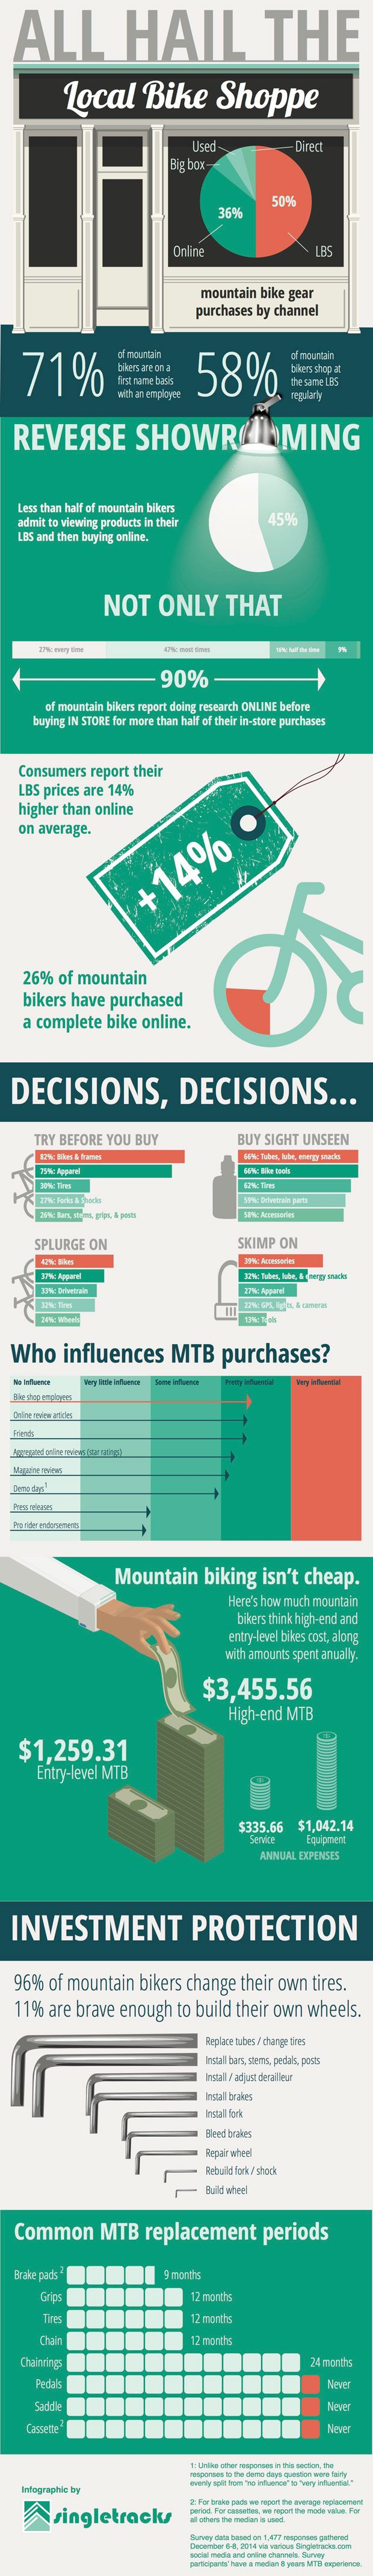 Infographic: All Hail the Local Bike Shop: Survey data shows bike shops still reign supreme! (singletracks)